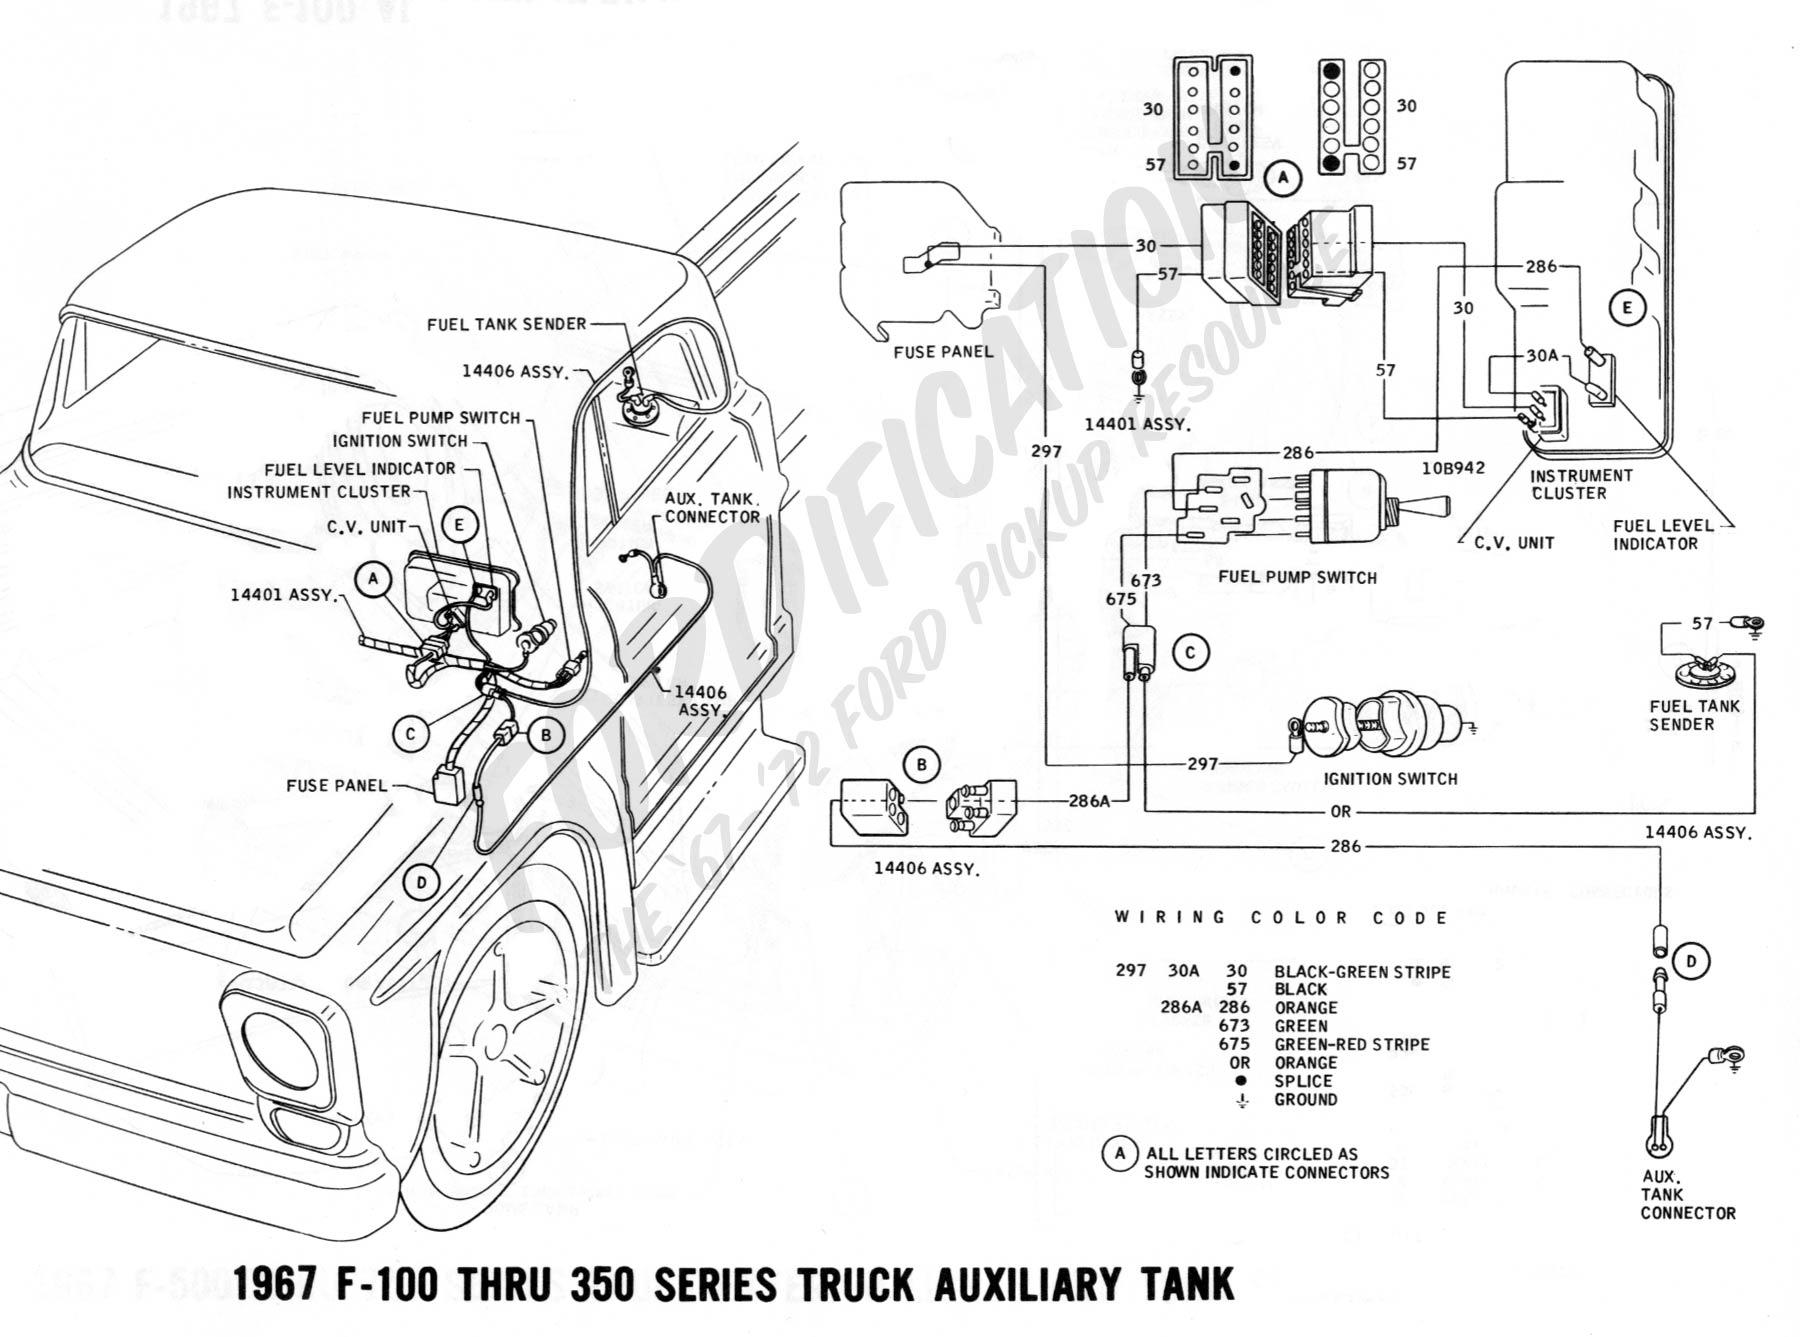 Chevy Astro Fuel Tank Wiring Diagram Library For 1989 350 1967 F 100 Thru Auxiliary